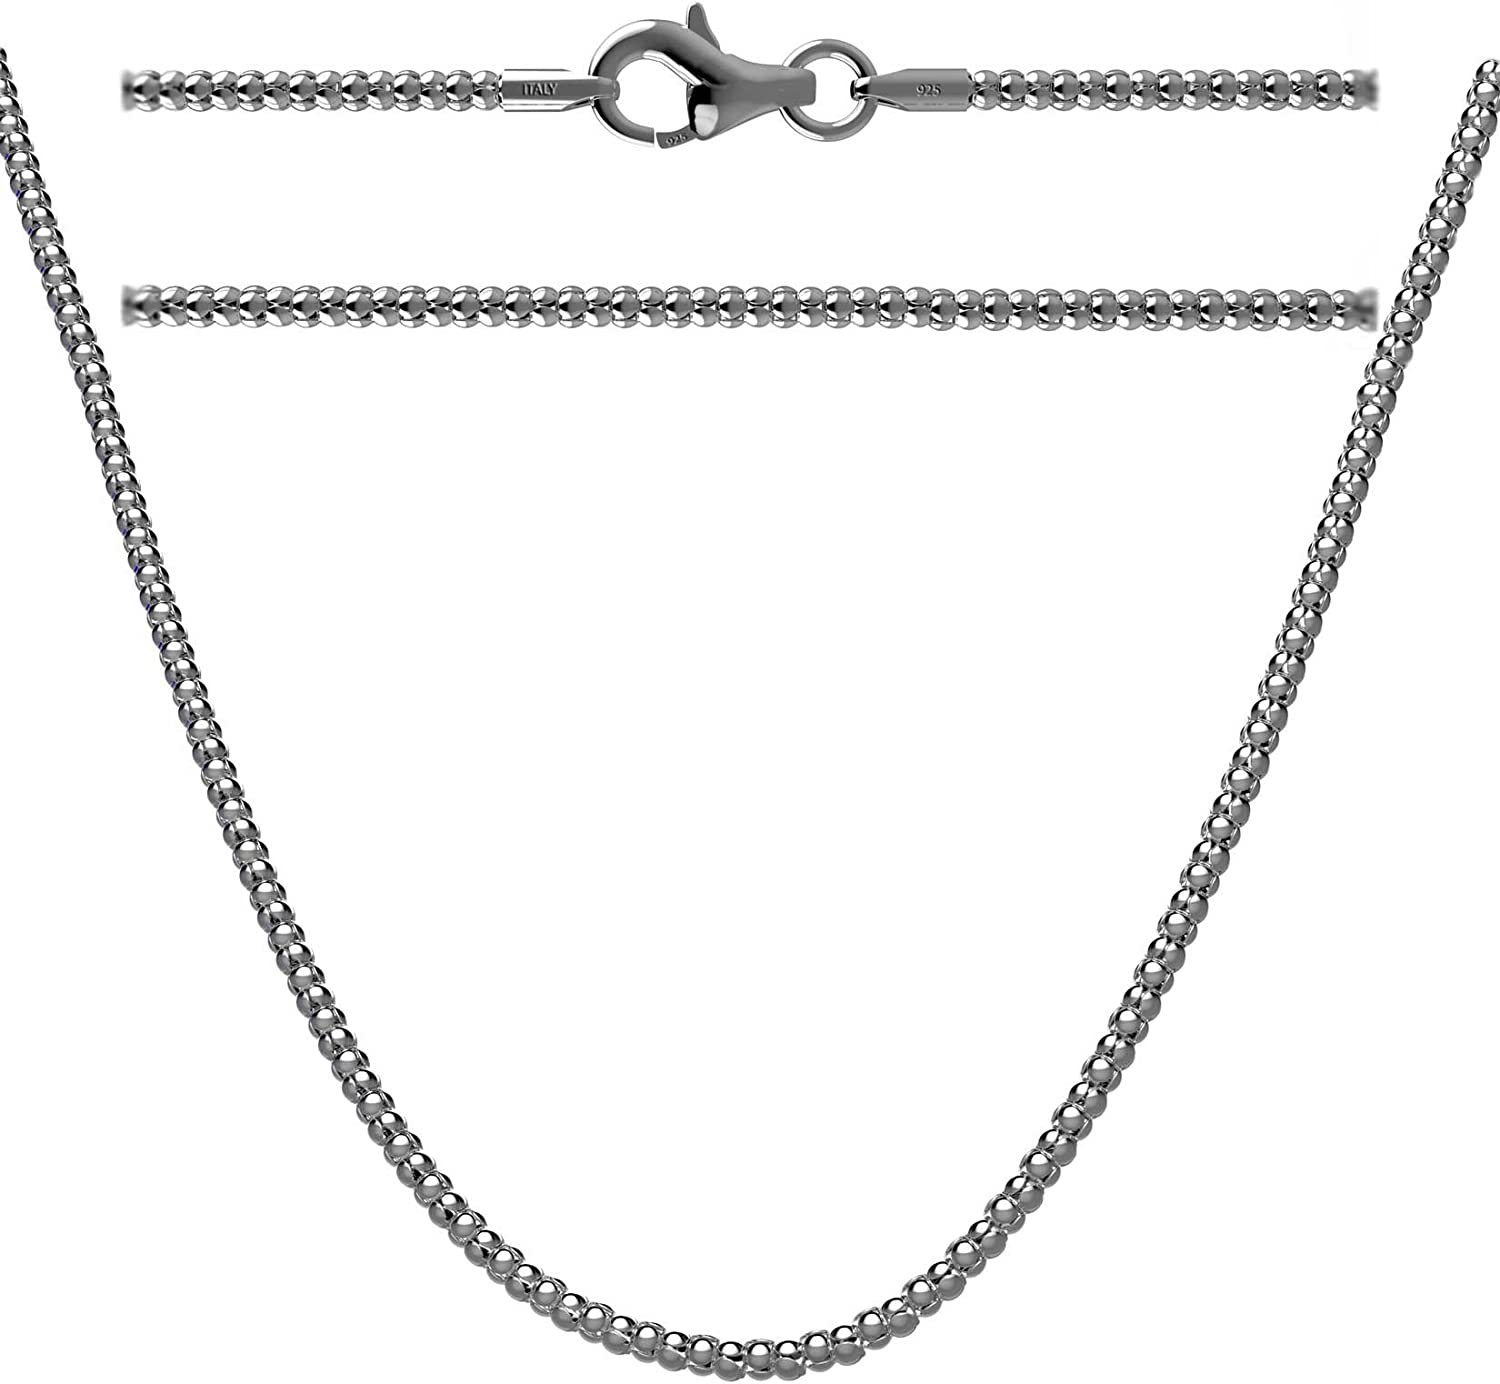 1mm STERLING SILVER 925 ITALIAN LADY COREANA LINK STYLE CHAIN NECKLACE JEWELLERY